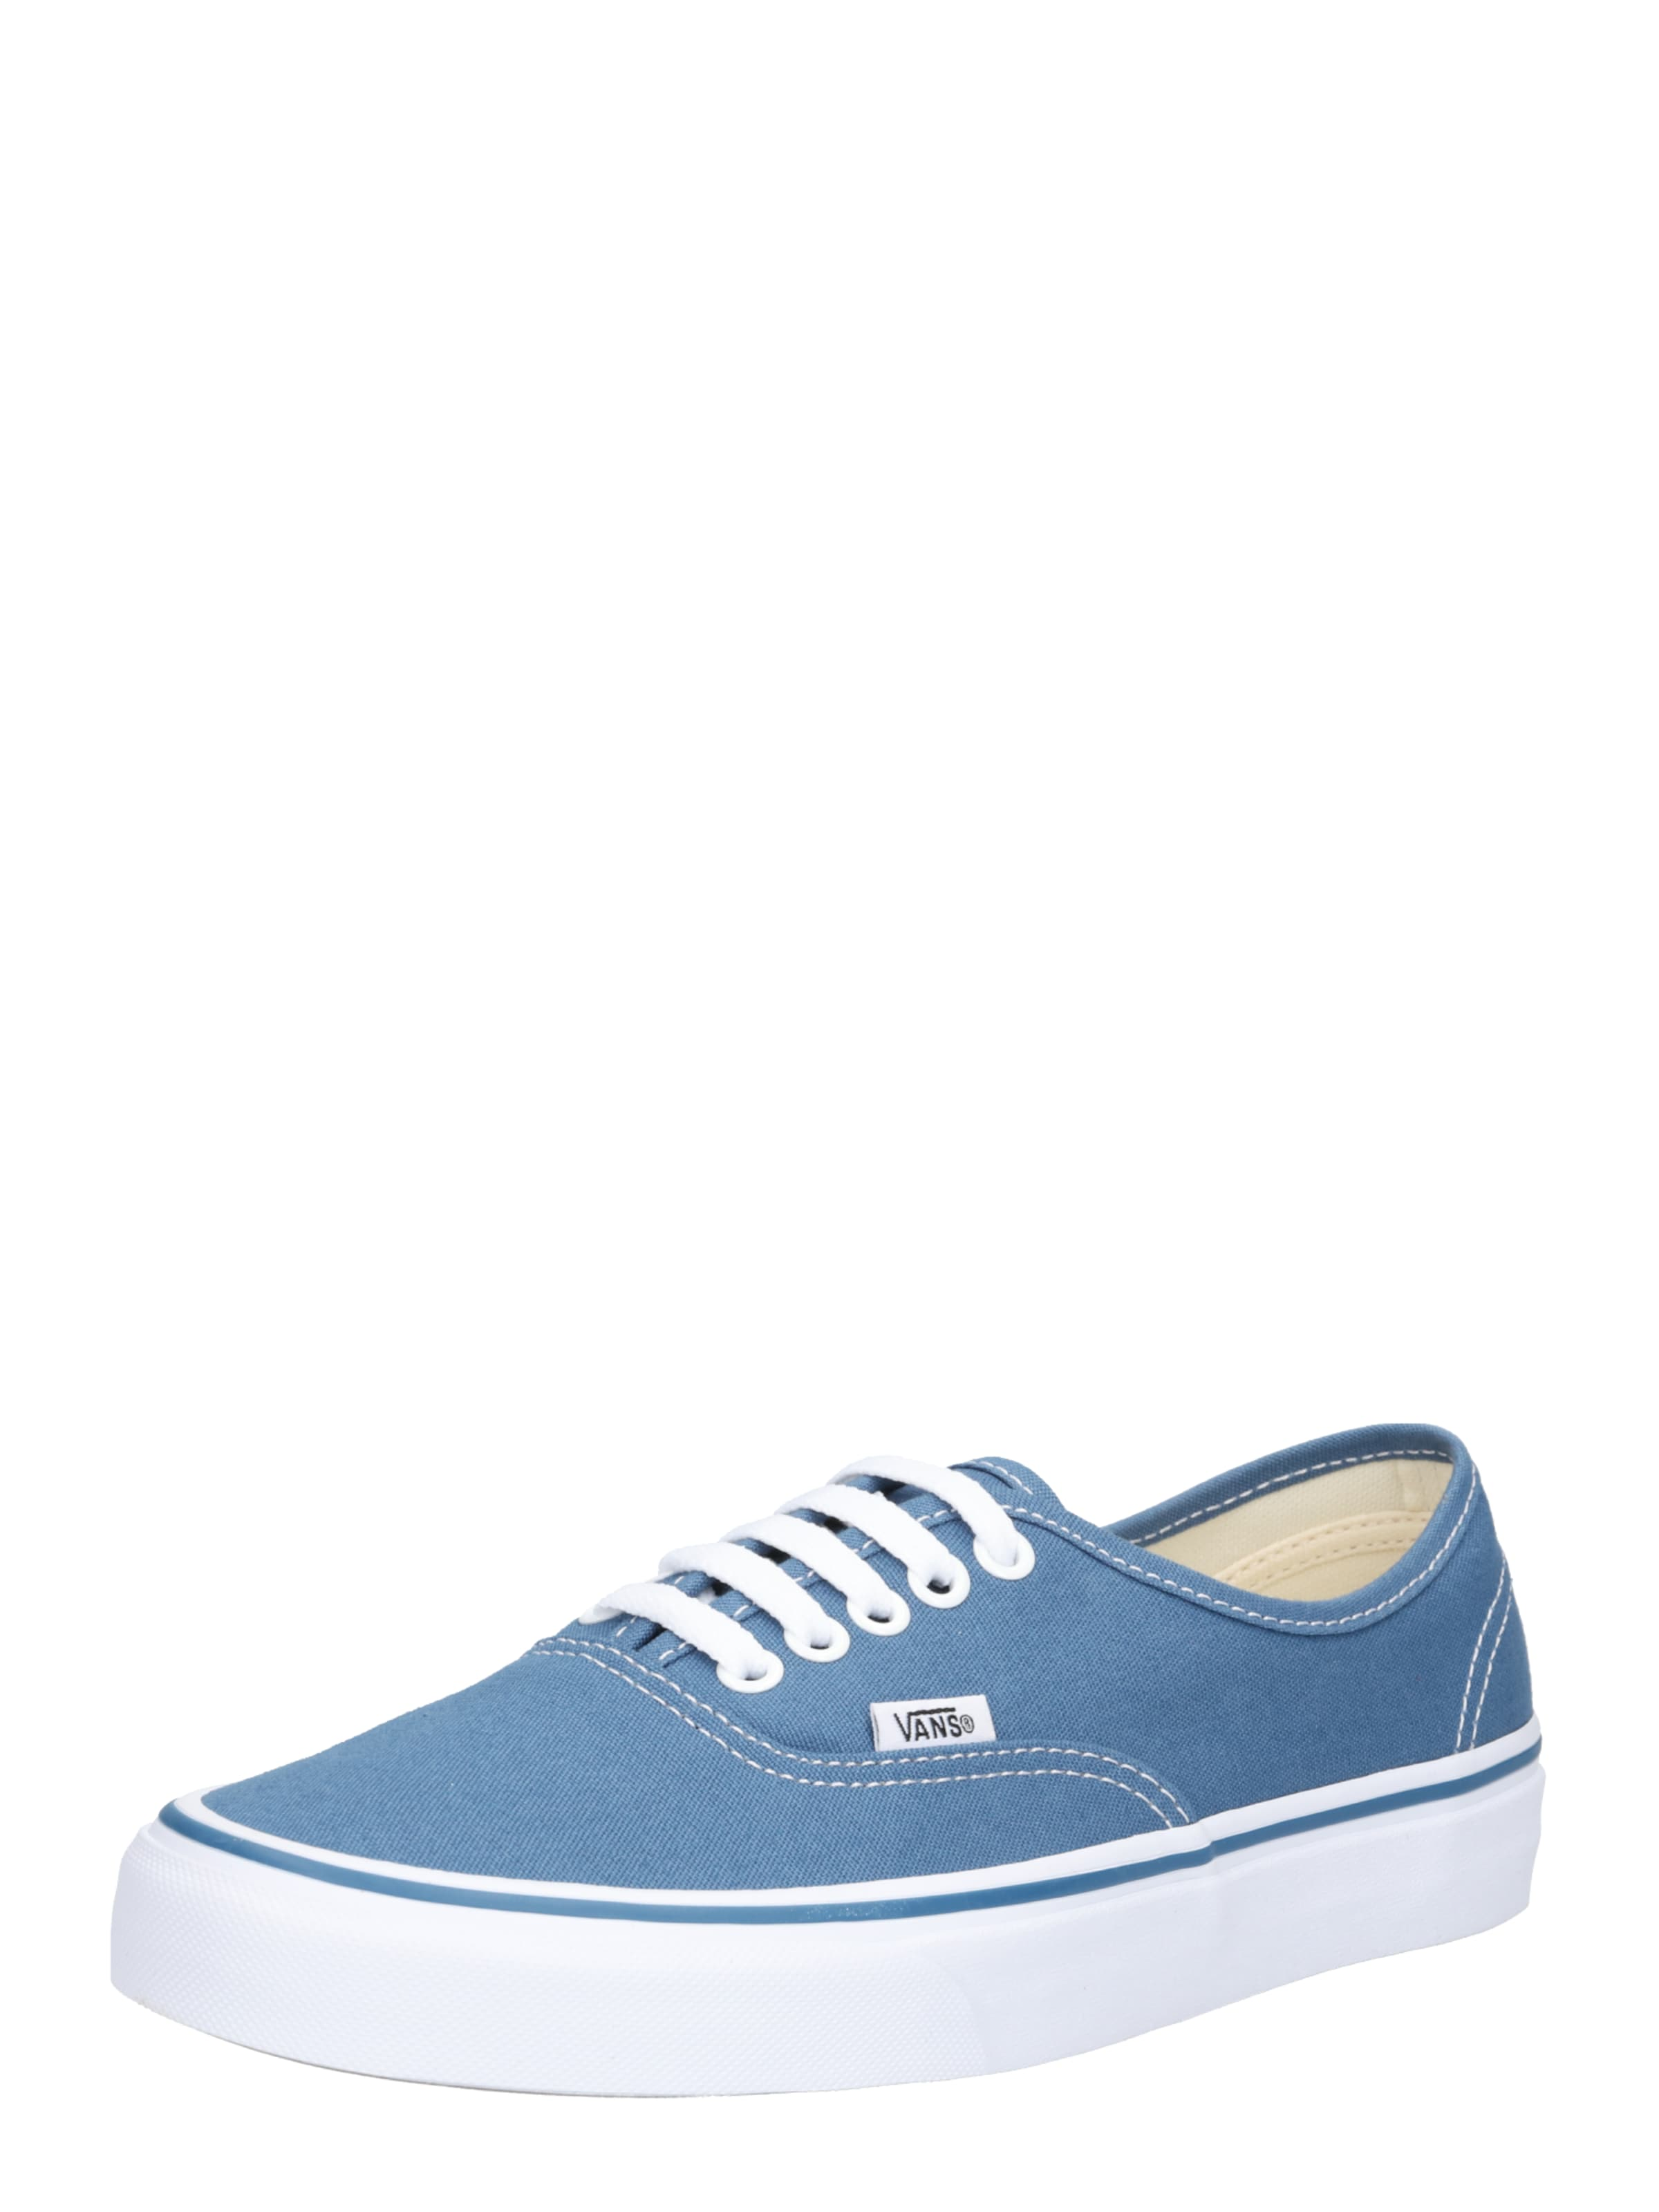 Navy Sneaker Vans Vans 'authentic' In gy6b7f